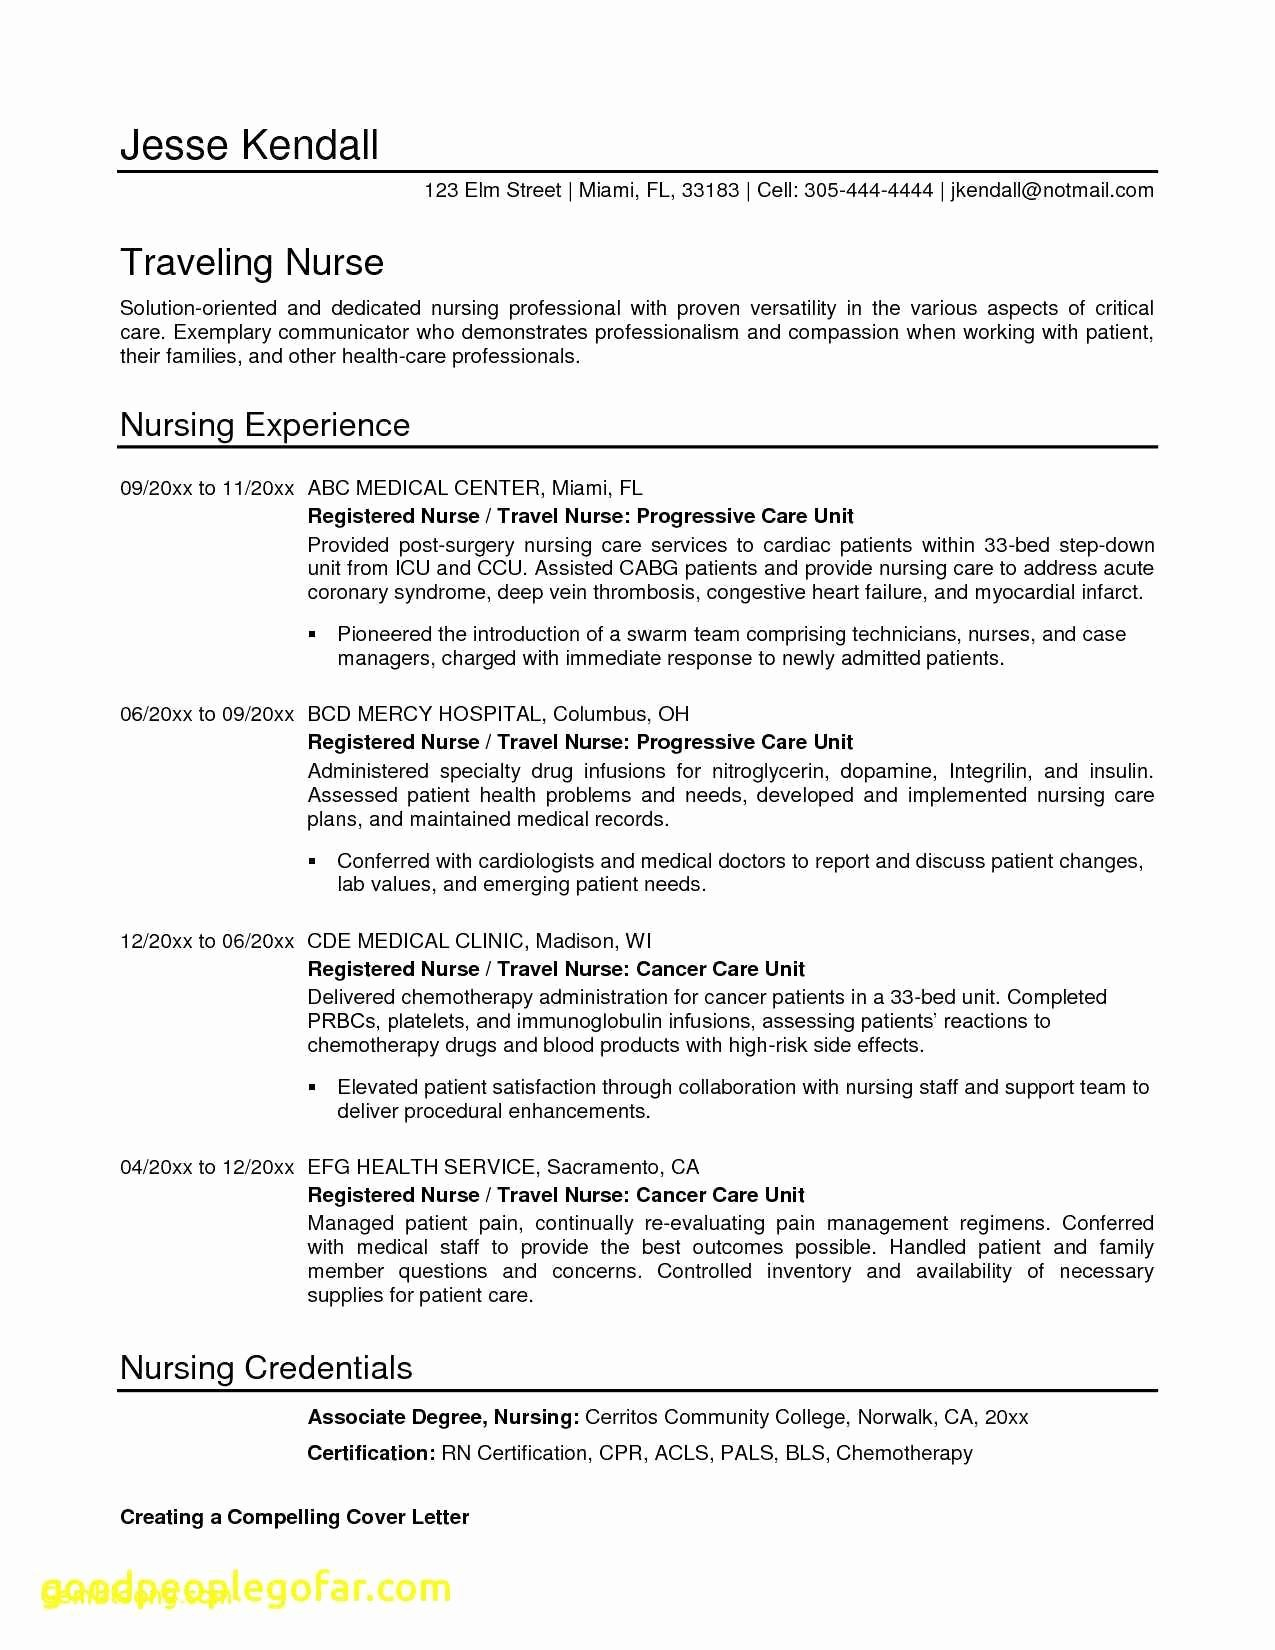 Professional Resume Writing - 18 How to Write A Professional Resume